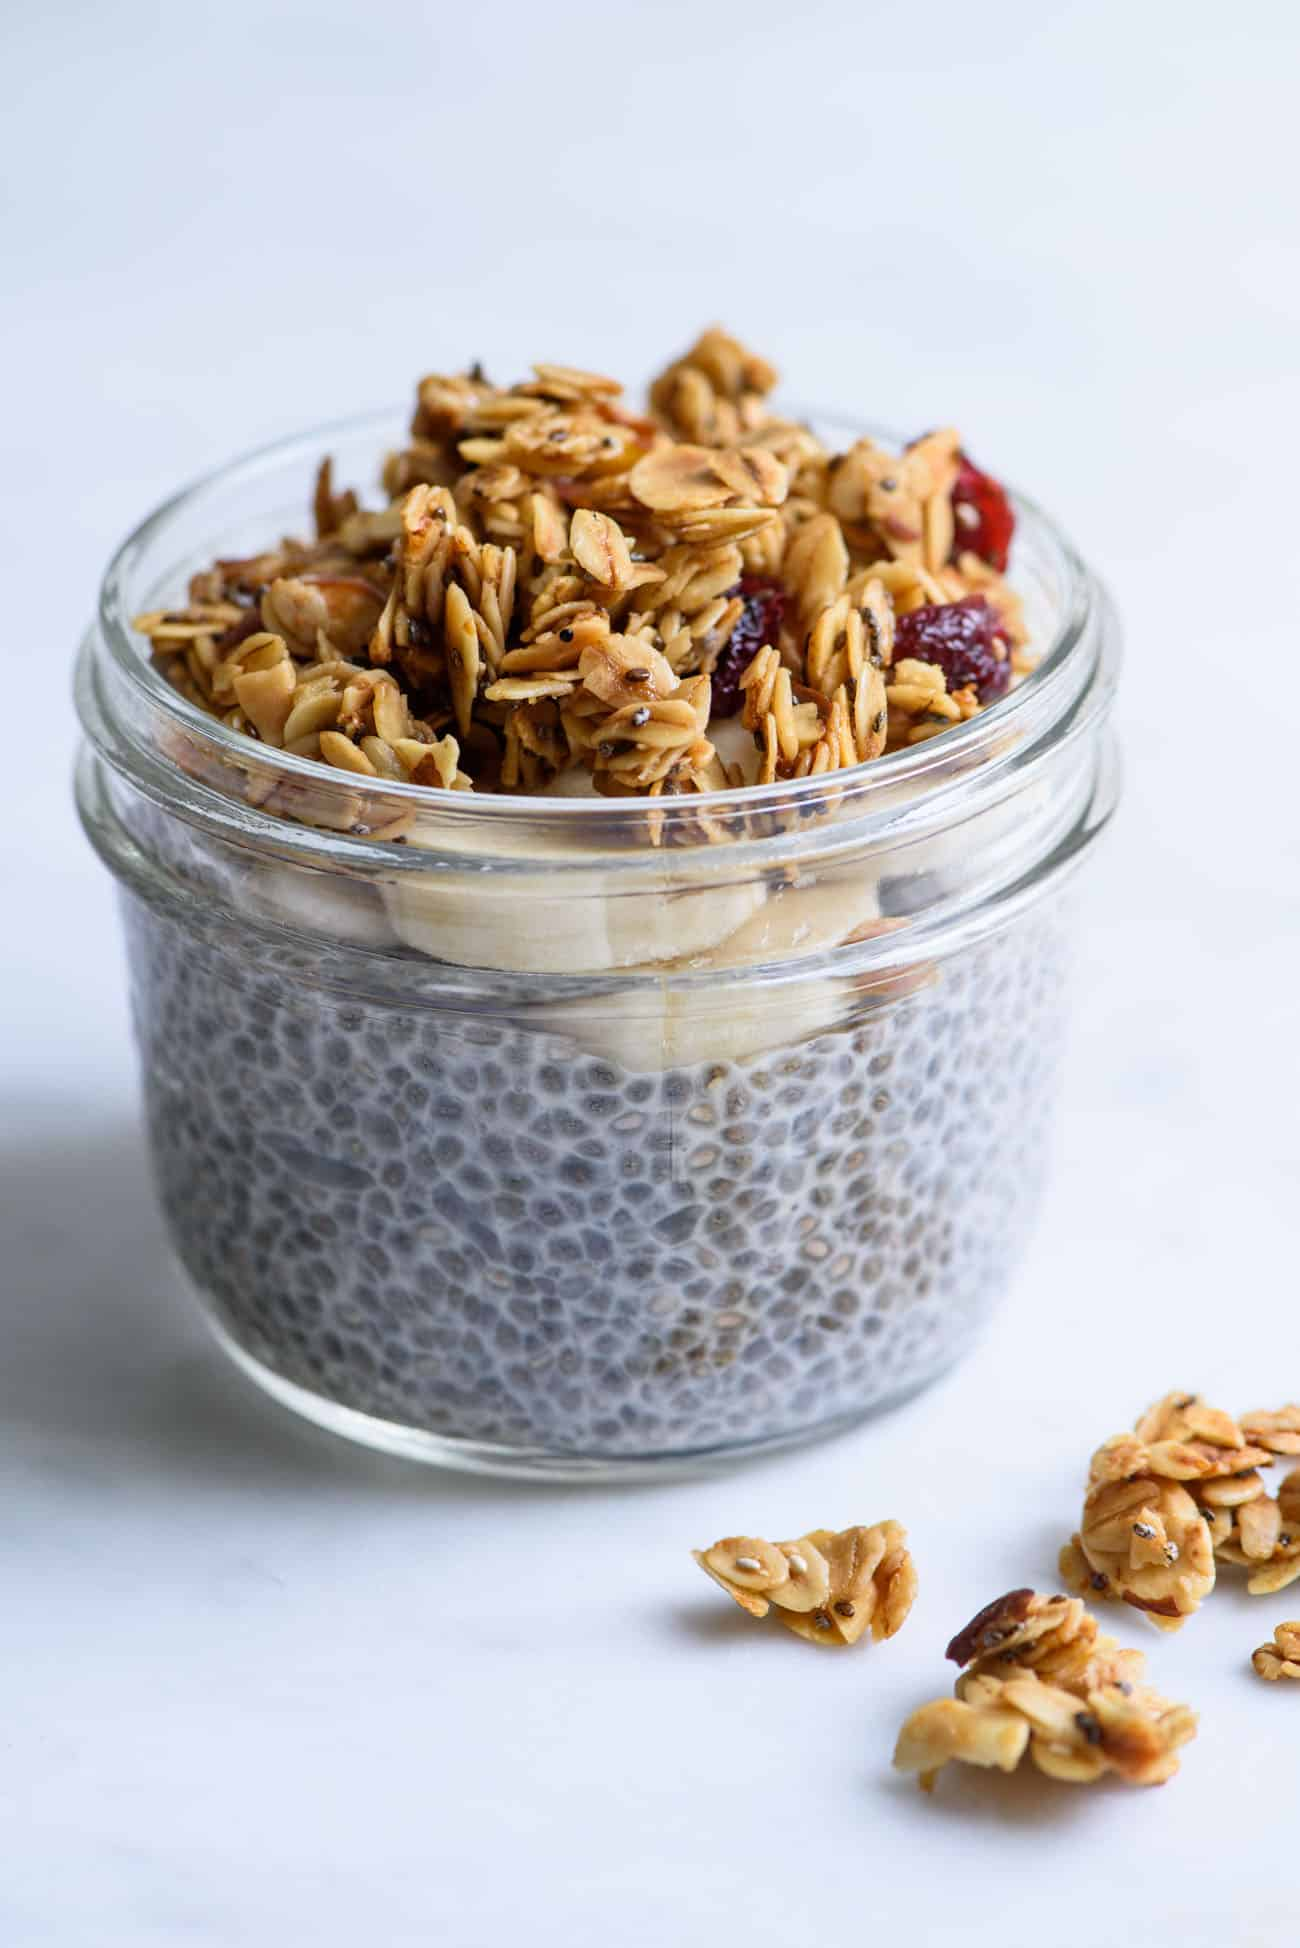 Make-Ahead Breakfast Recipe | Chia Pudding & Simple Homemade Granola in a Mason jar